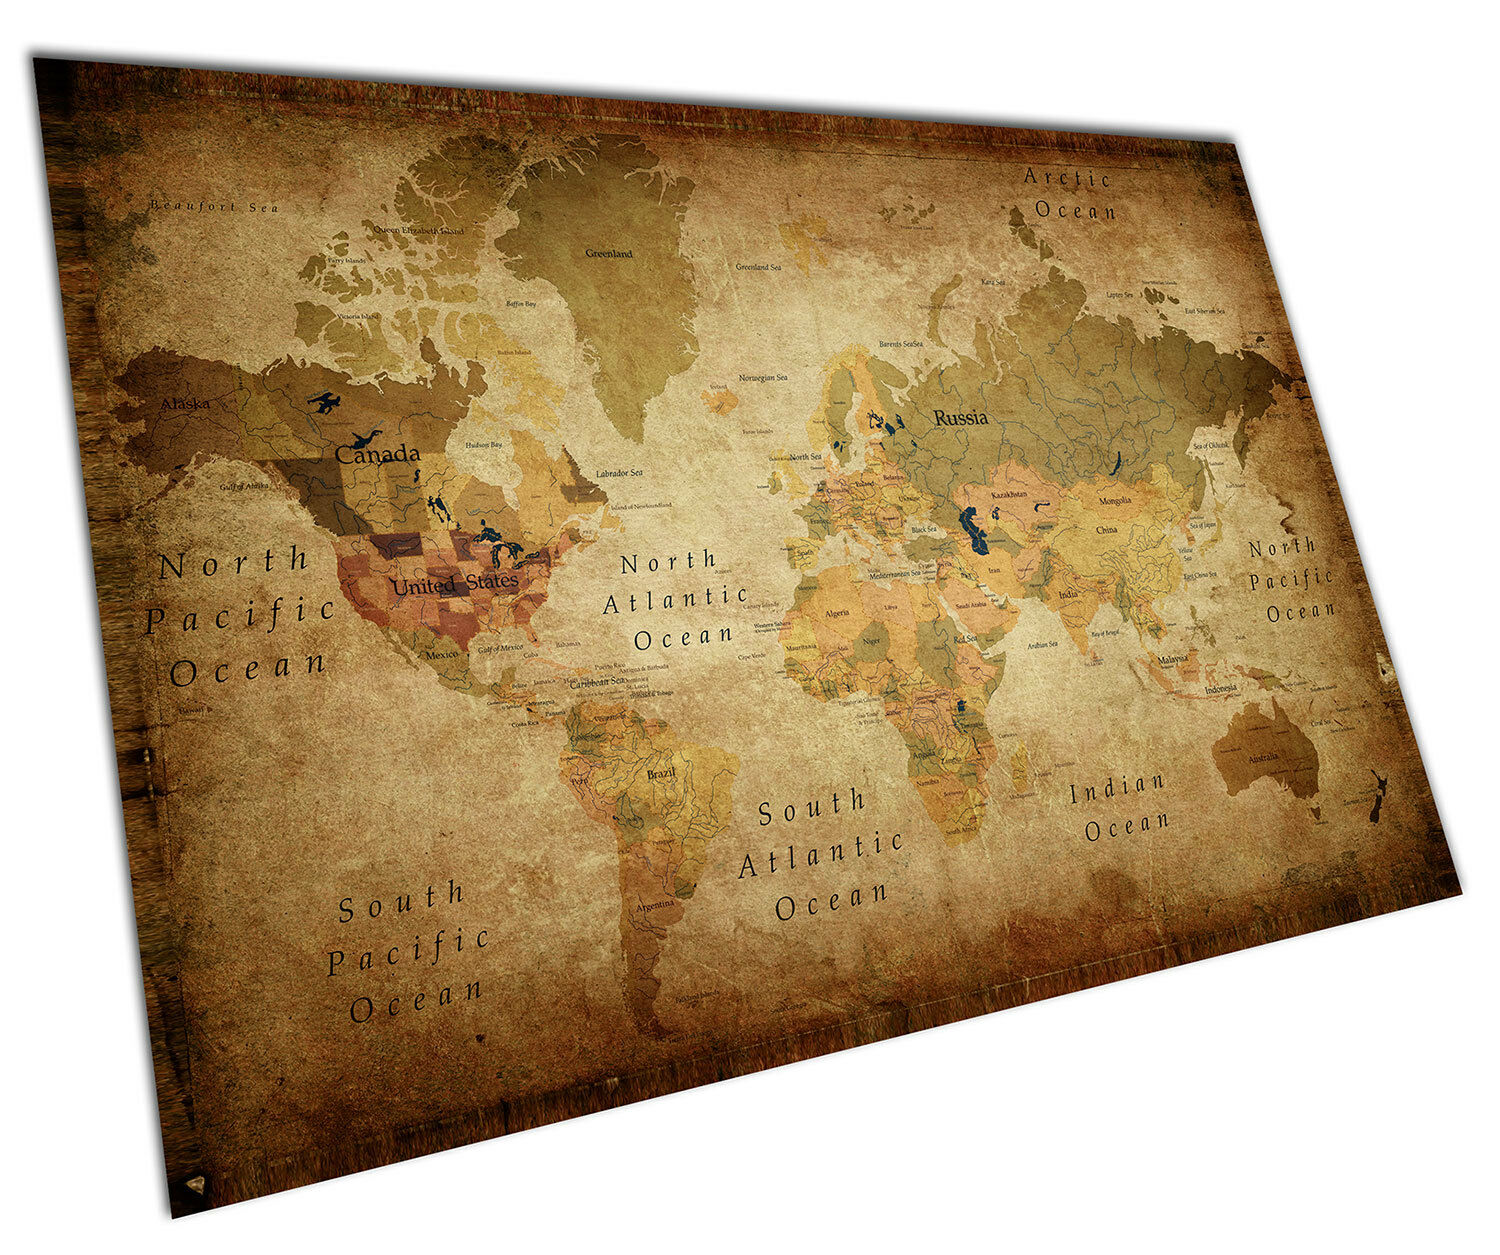 RETRO VINTAGE WORLD MAP WALL ART EXTRA-LARGE A0 POSTER 1189mm x ...